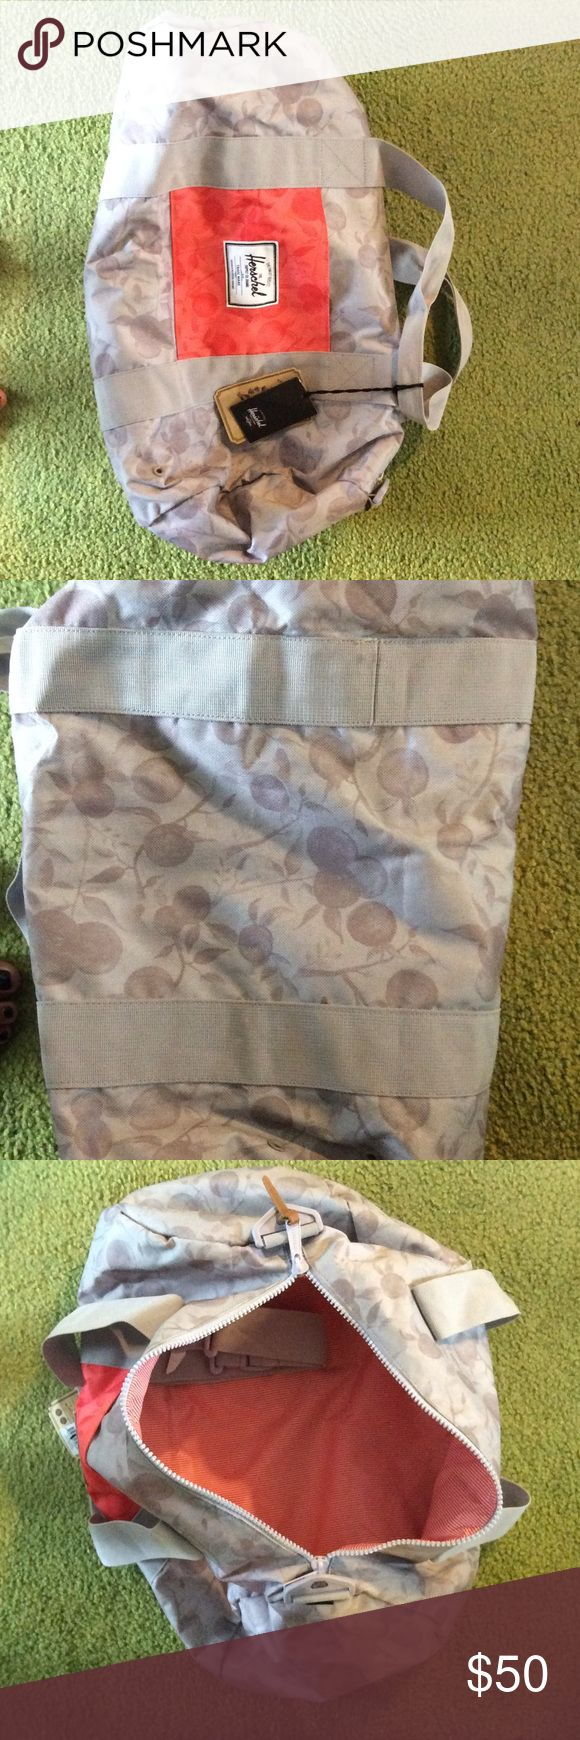 Brand new Herschel duffle bag! Beautiful print! Maybe used once some spot on bottom of bag barley noticeable shown in second photo! Great carry on size for plane!! Herschel Supply Company Bags Travel Bags